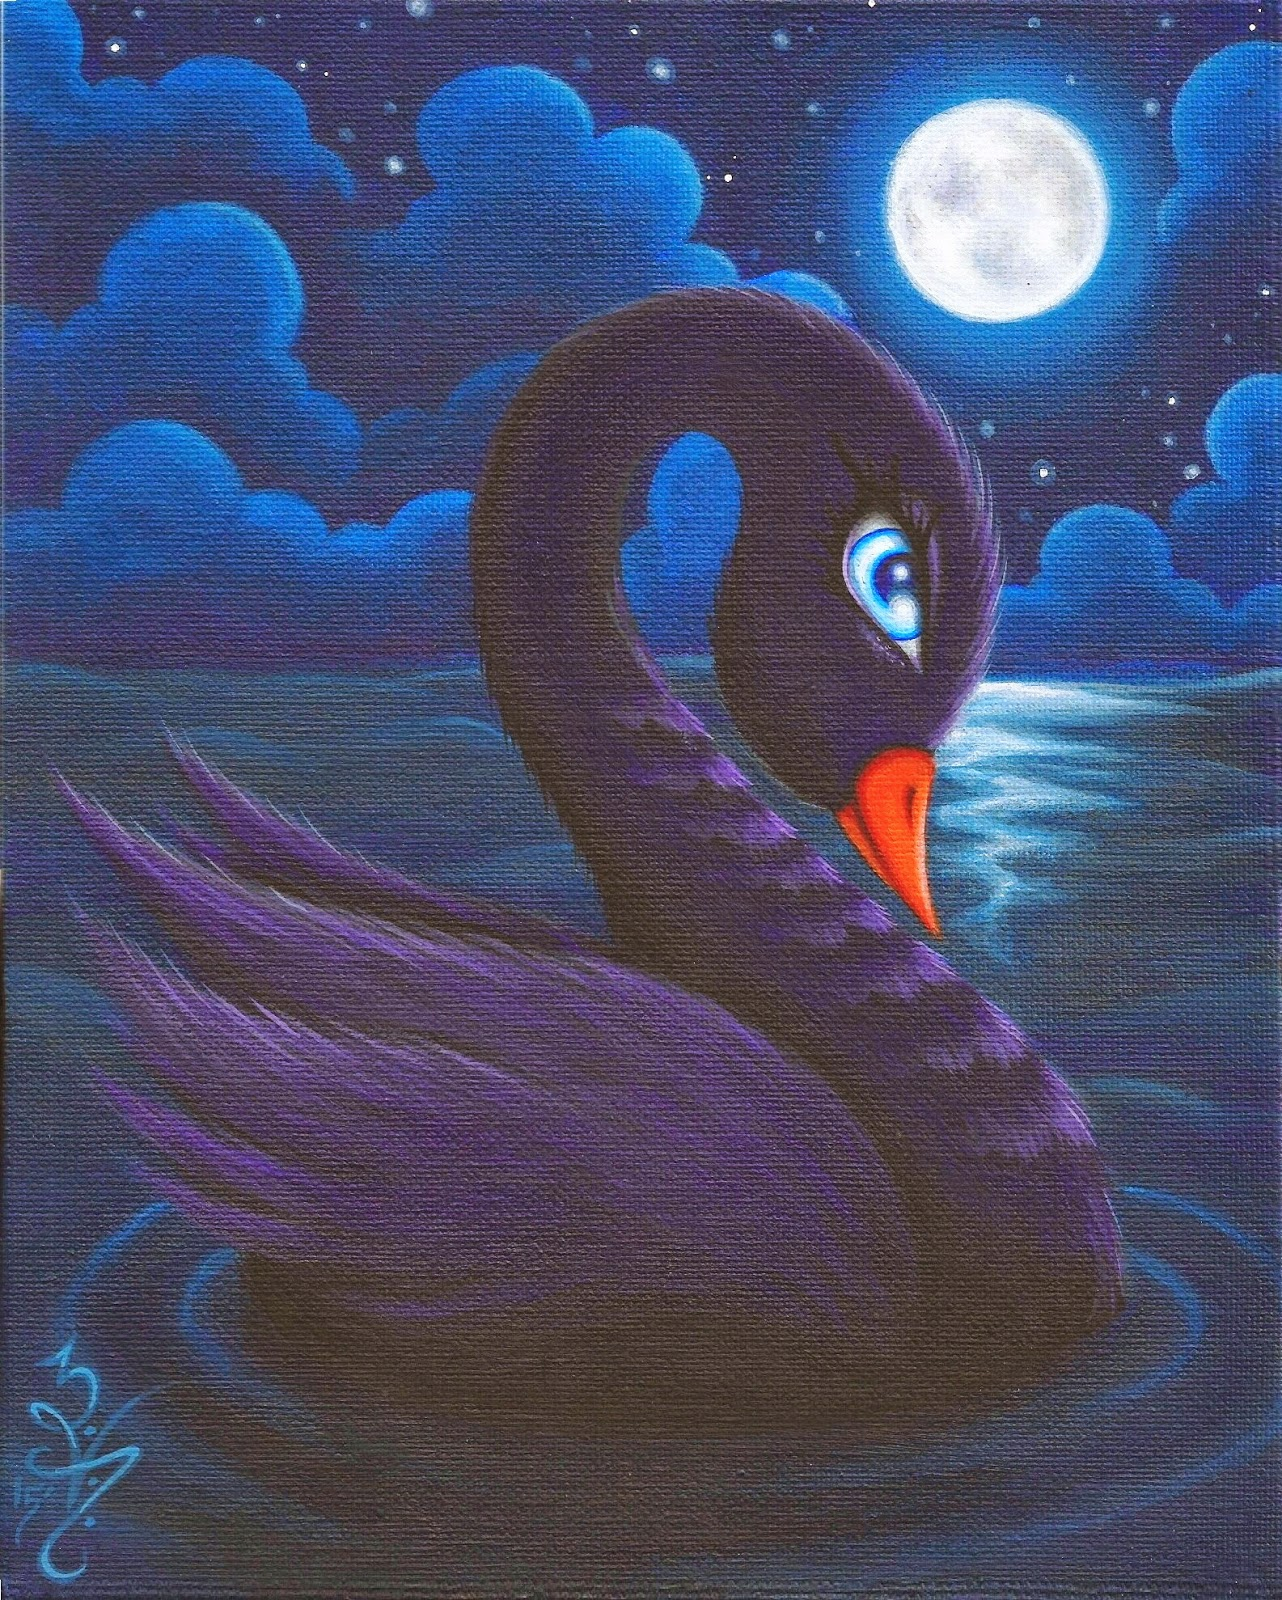 https://www.etsy.com/listing/225593966/original-fantasy-black-swan-ocean-bird?ref=shop_home_active_1